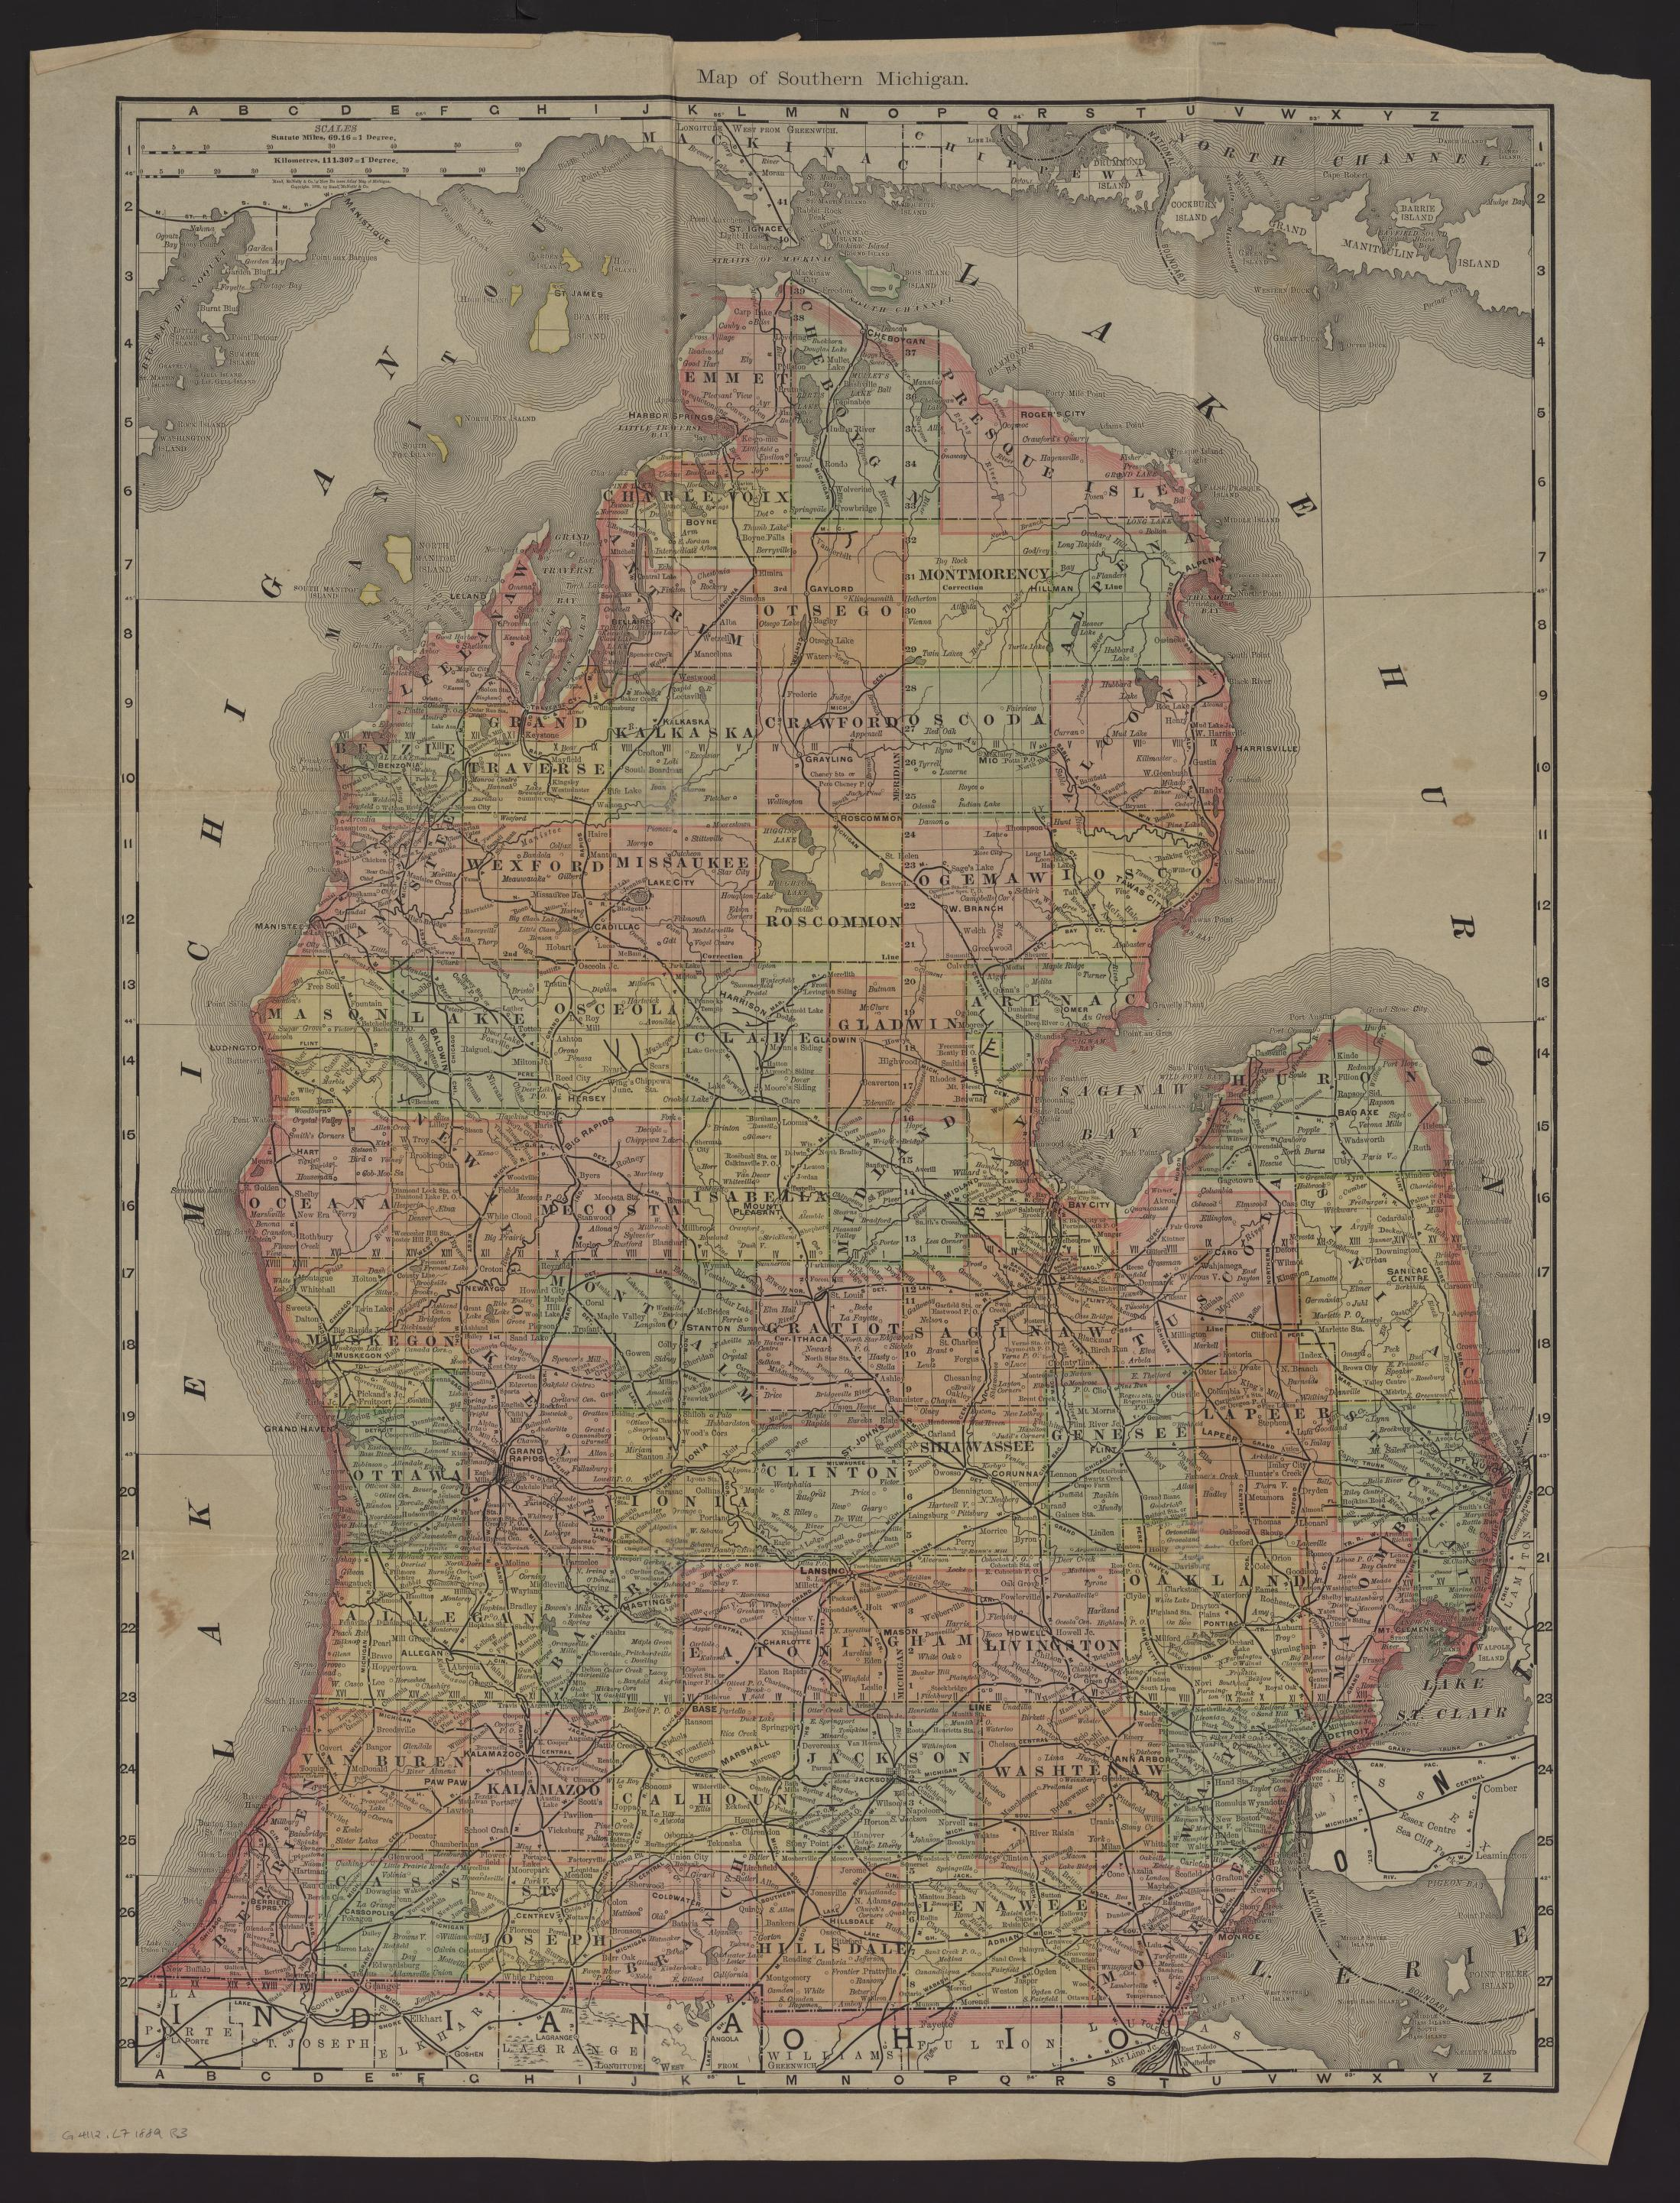 Um clark library maps map of southern michigan map of southern michigan publicscrutiny Image collections